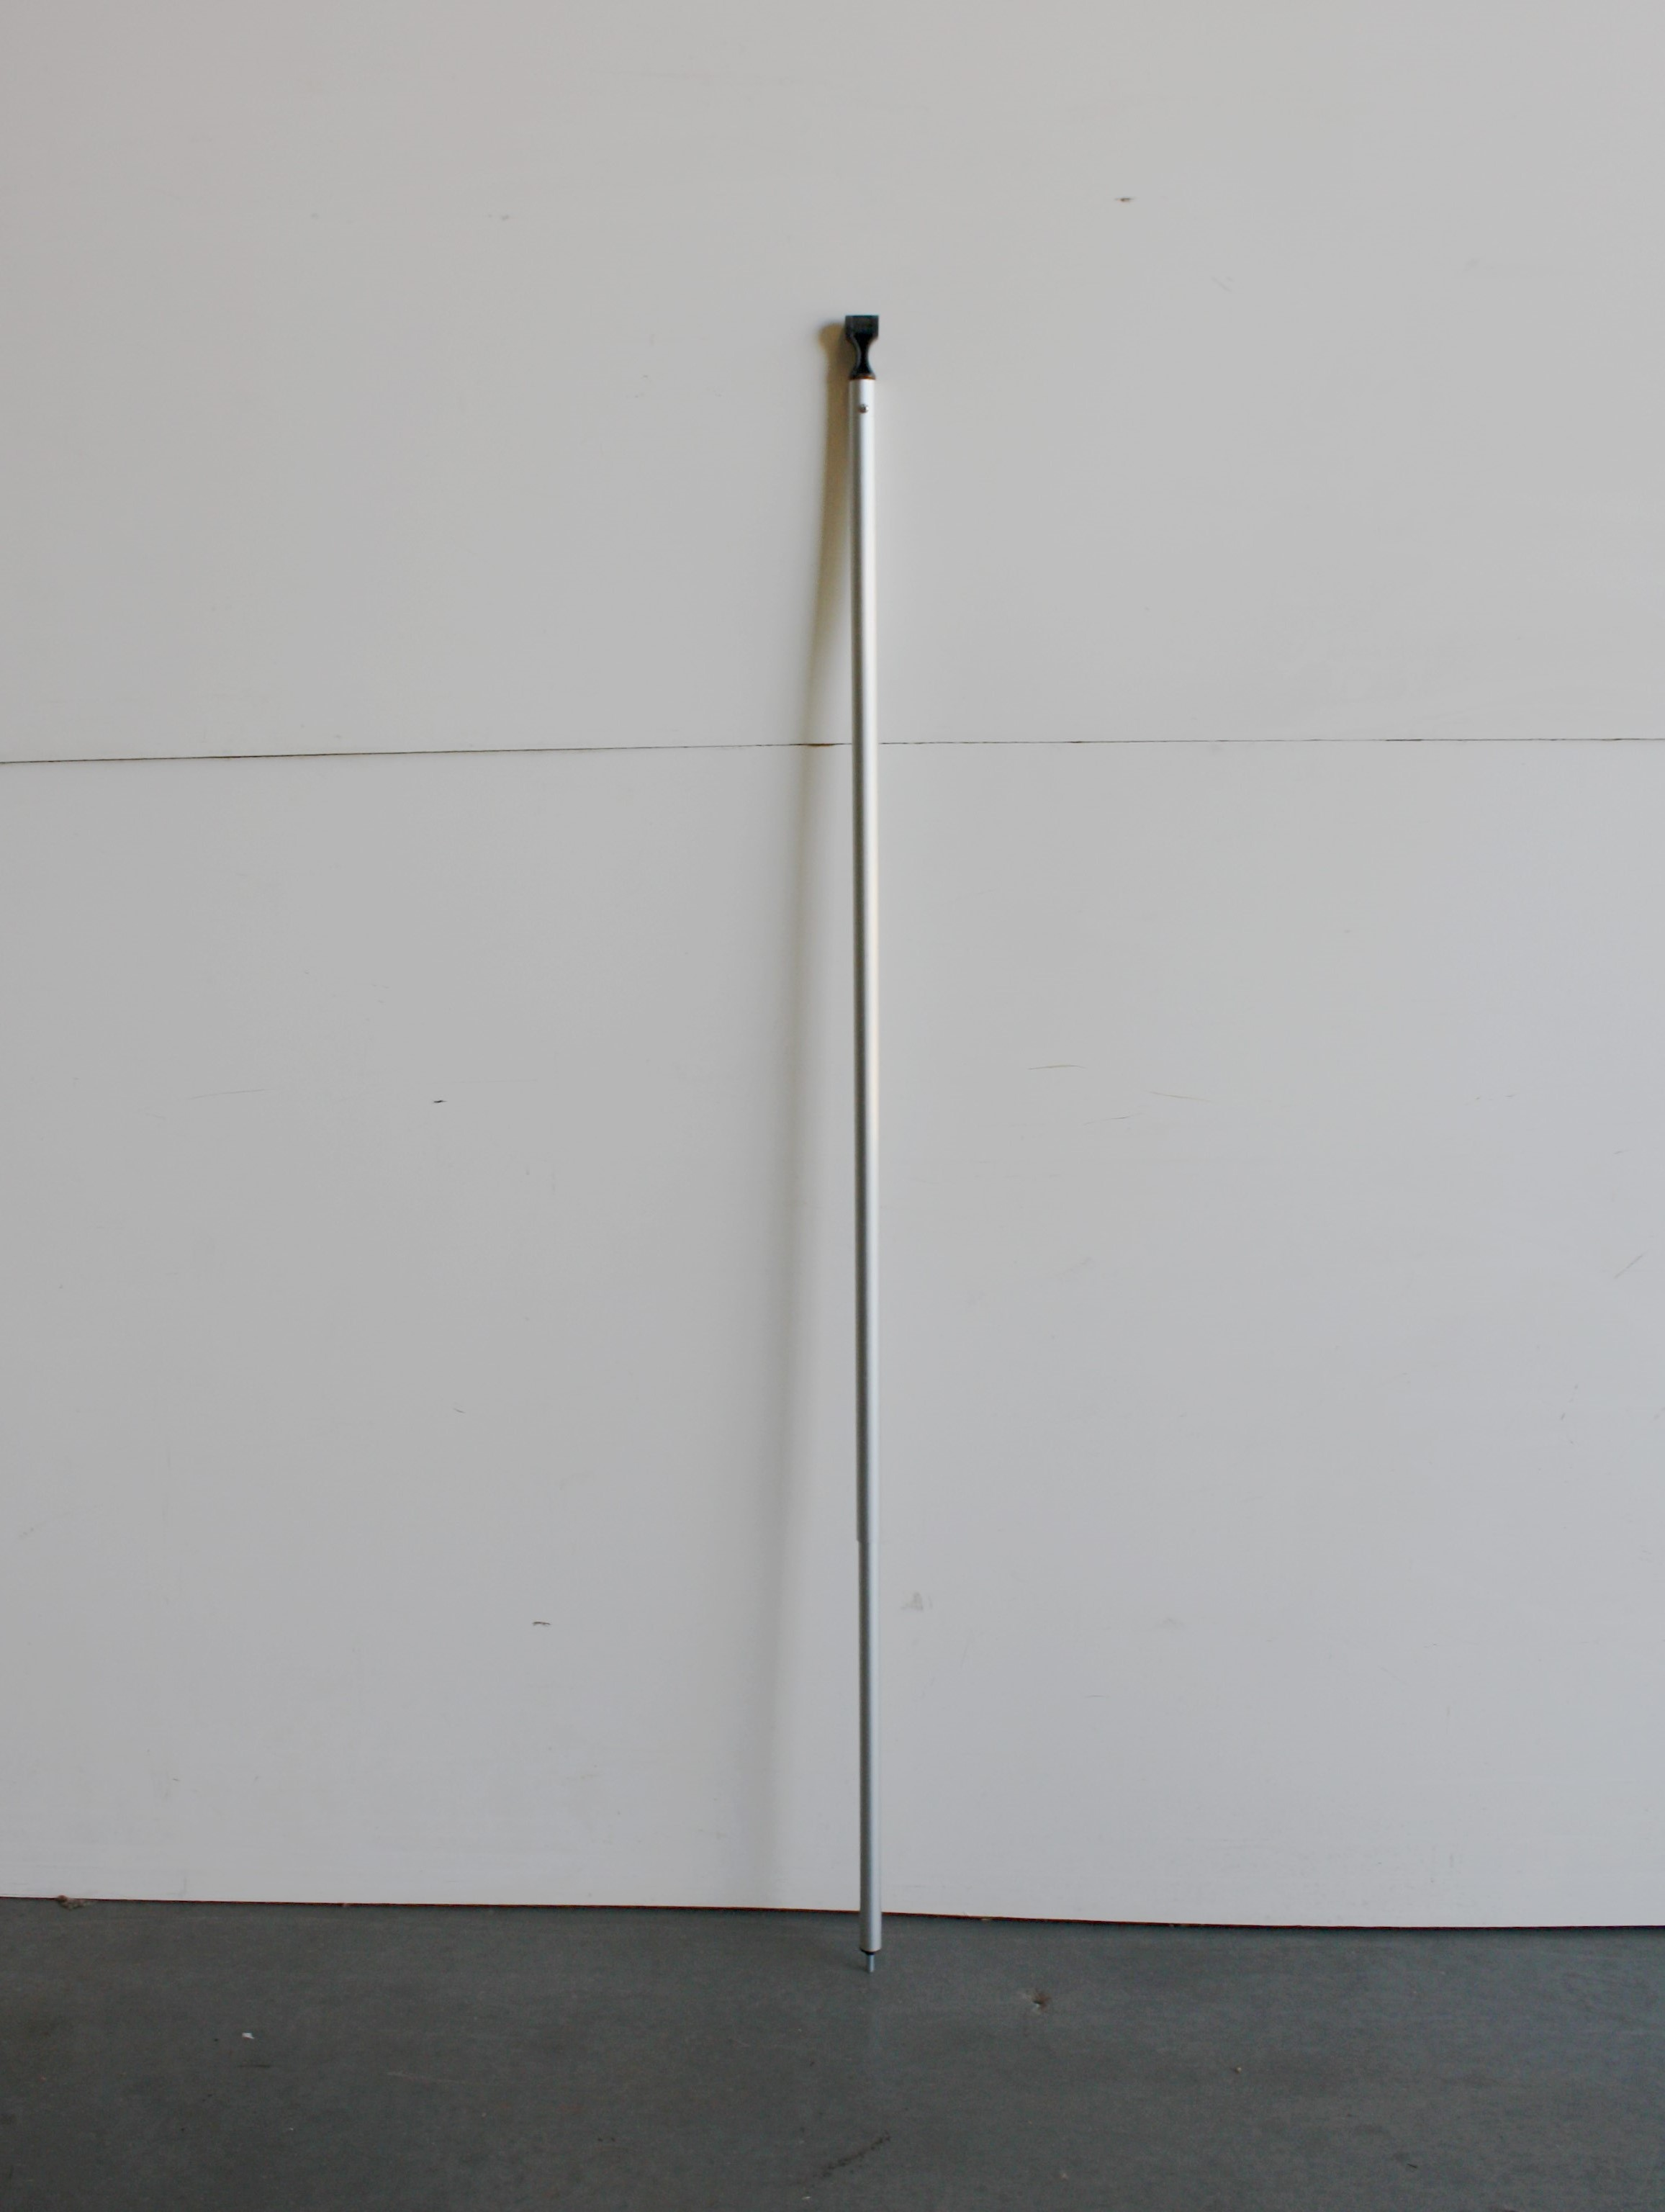 Car Awning Pole / Leg – Aluminium Telescopic Extends to